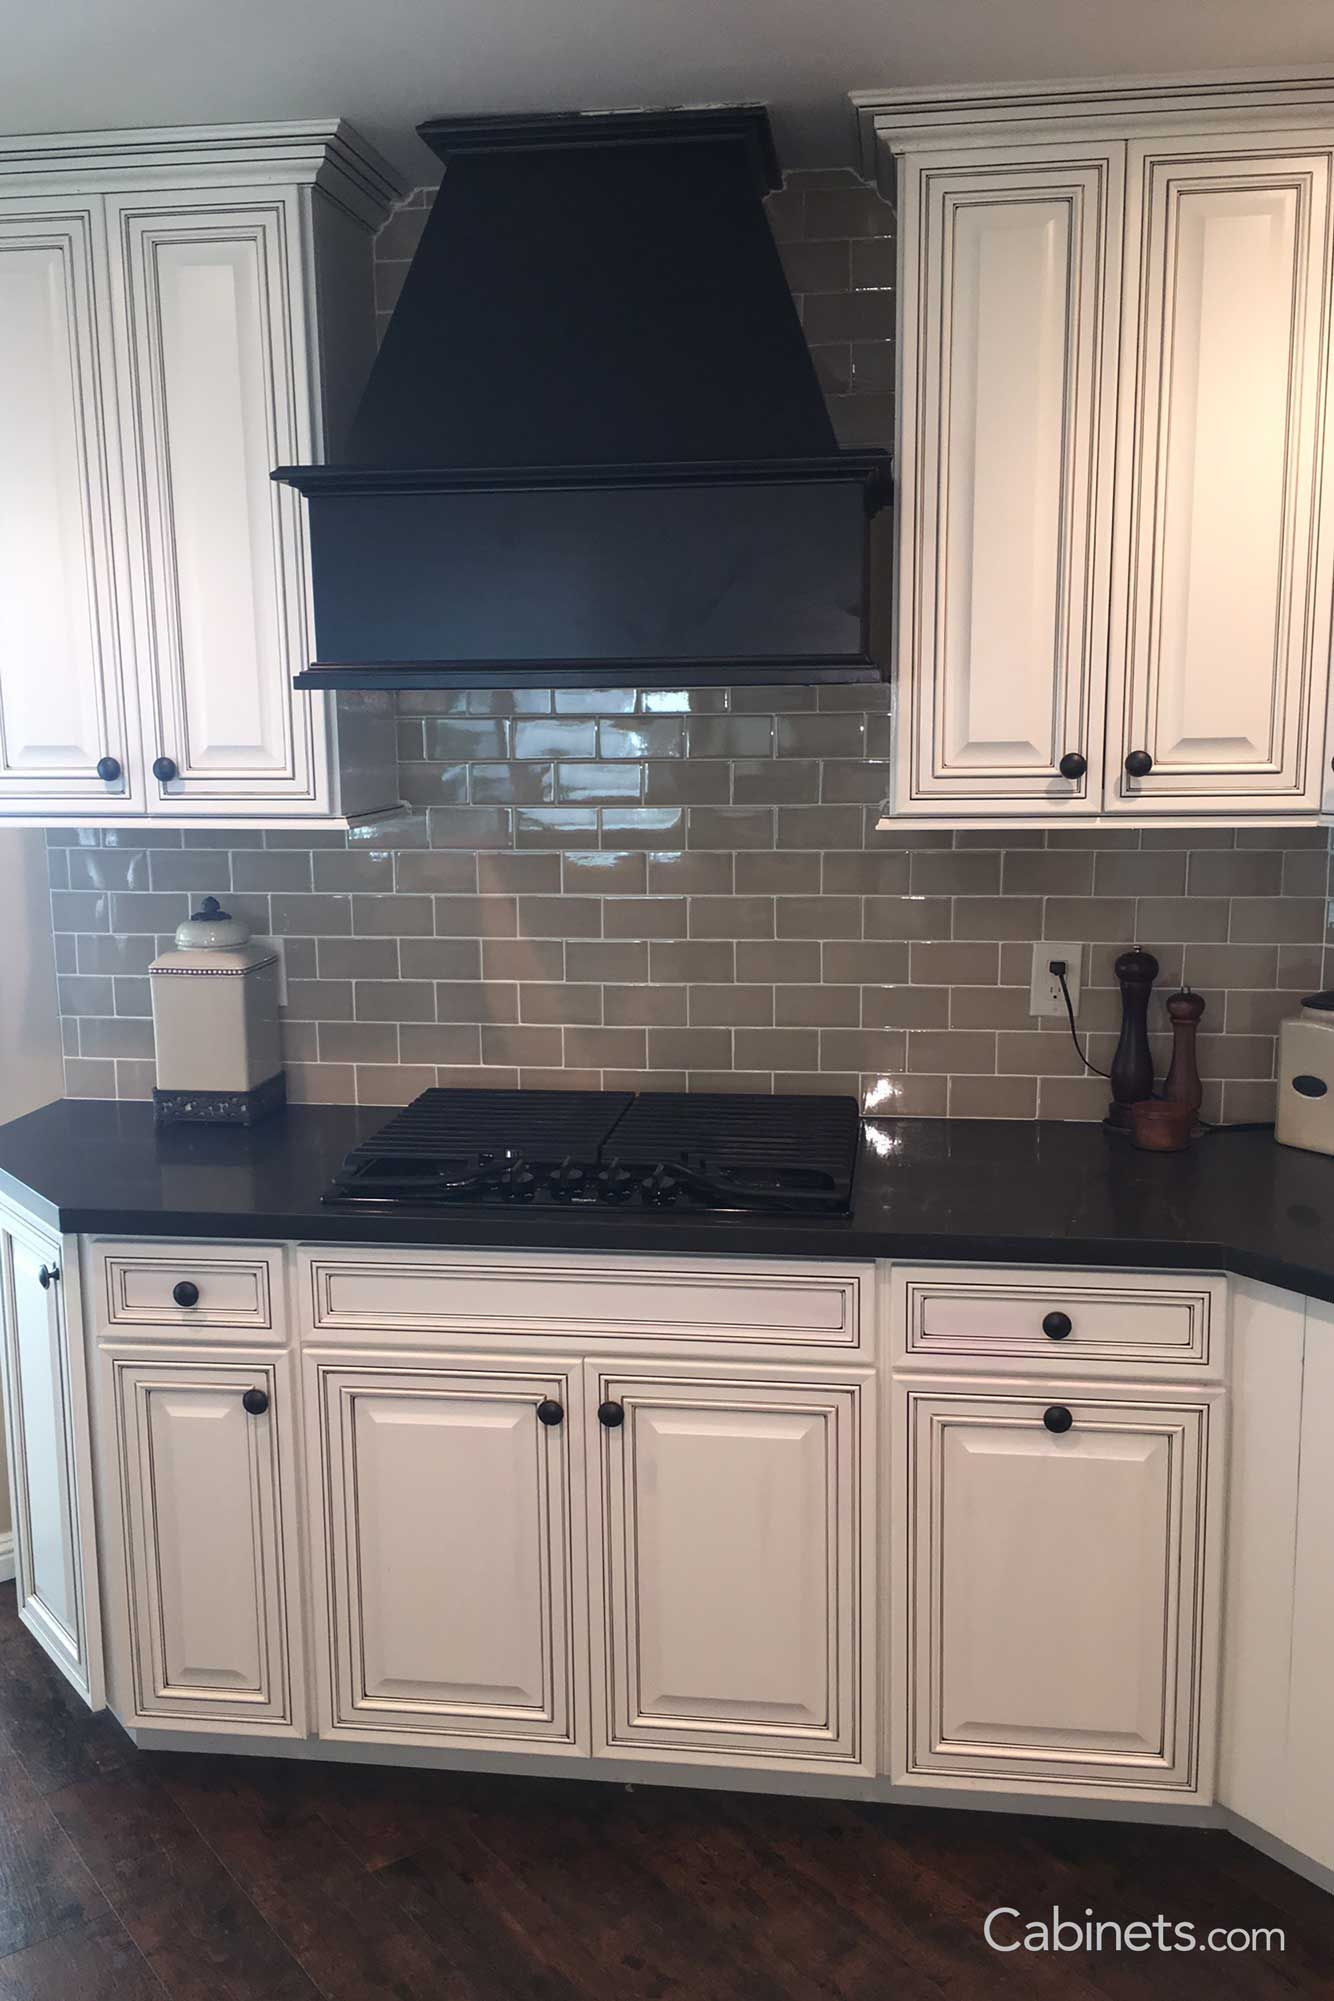 1500 Real Kitchen Photos Cabinets Com Gallery Cabinets Com